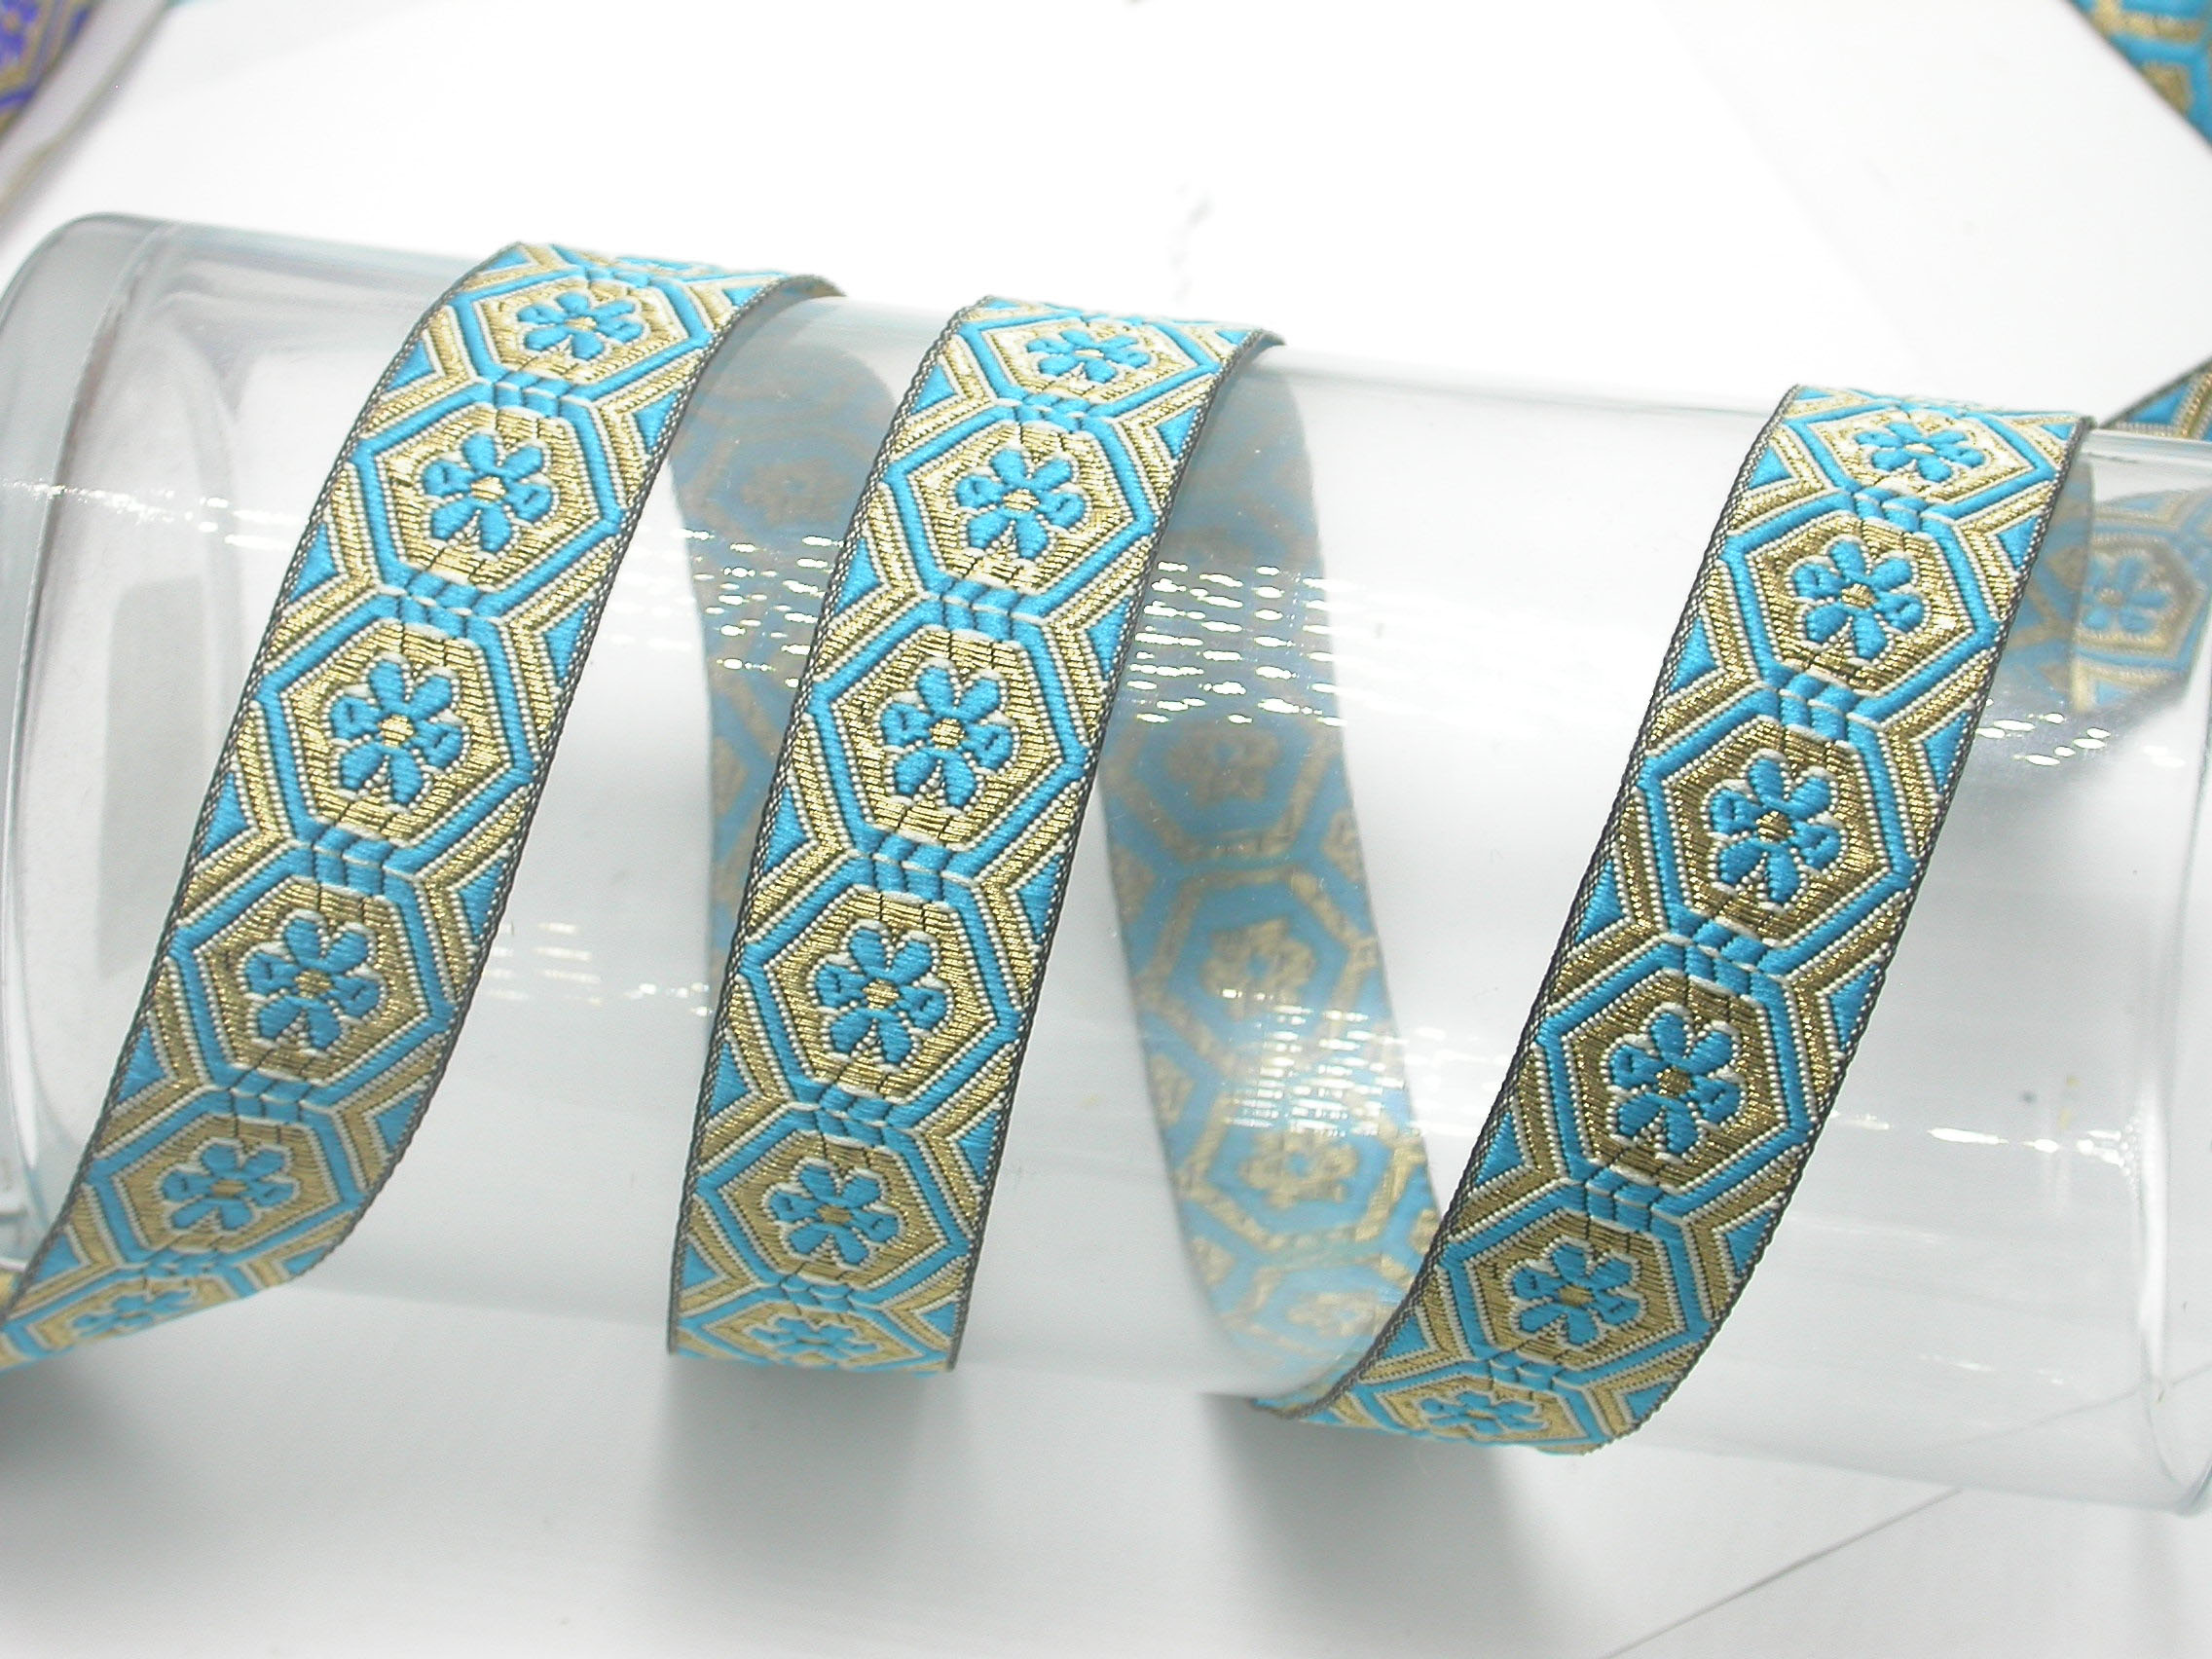 """Jacquard Ribbon 1"""" Flower Facets  Priced Per 3 yards & Up  Woven Jacquard Ribbon with Metallic  8 colorways"""